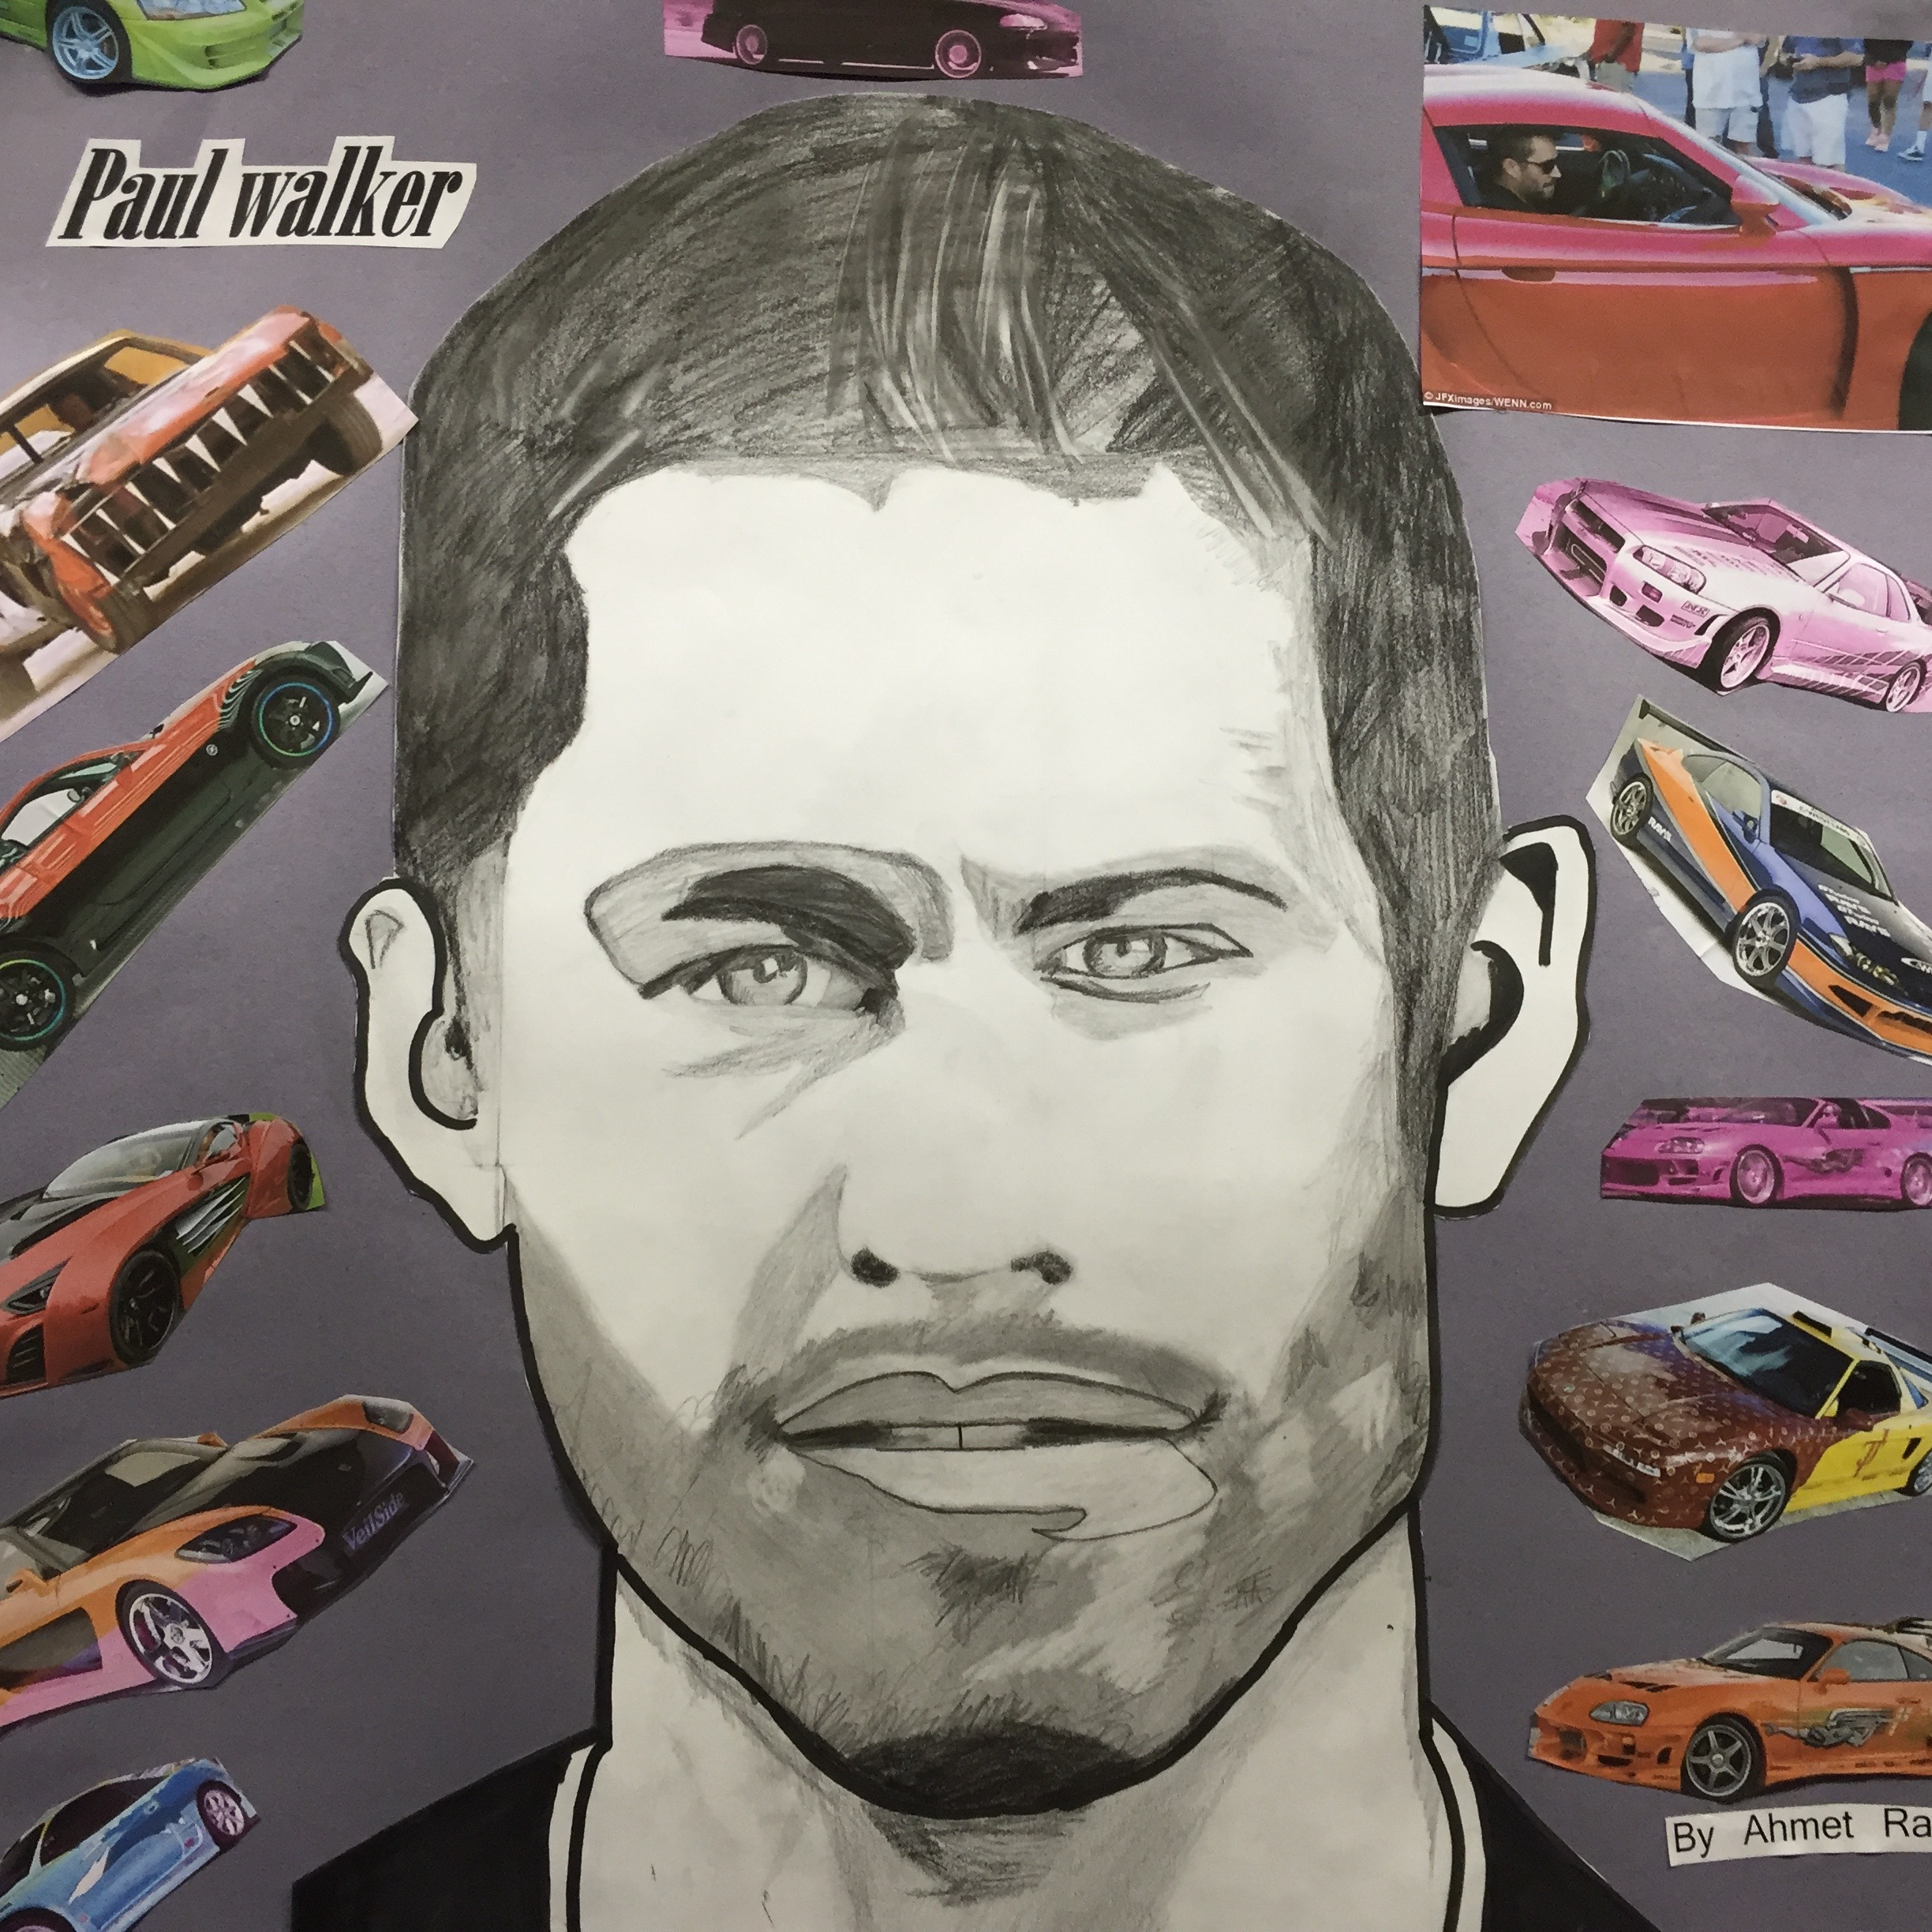 Paul Walker by Ahmet Ramic